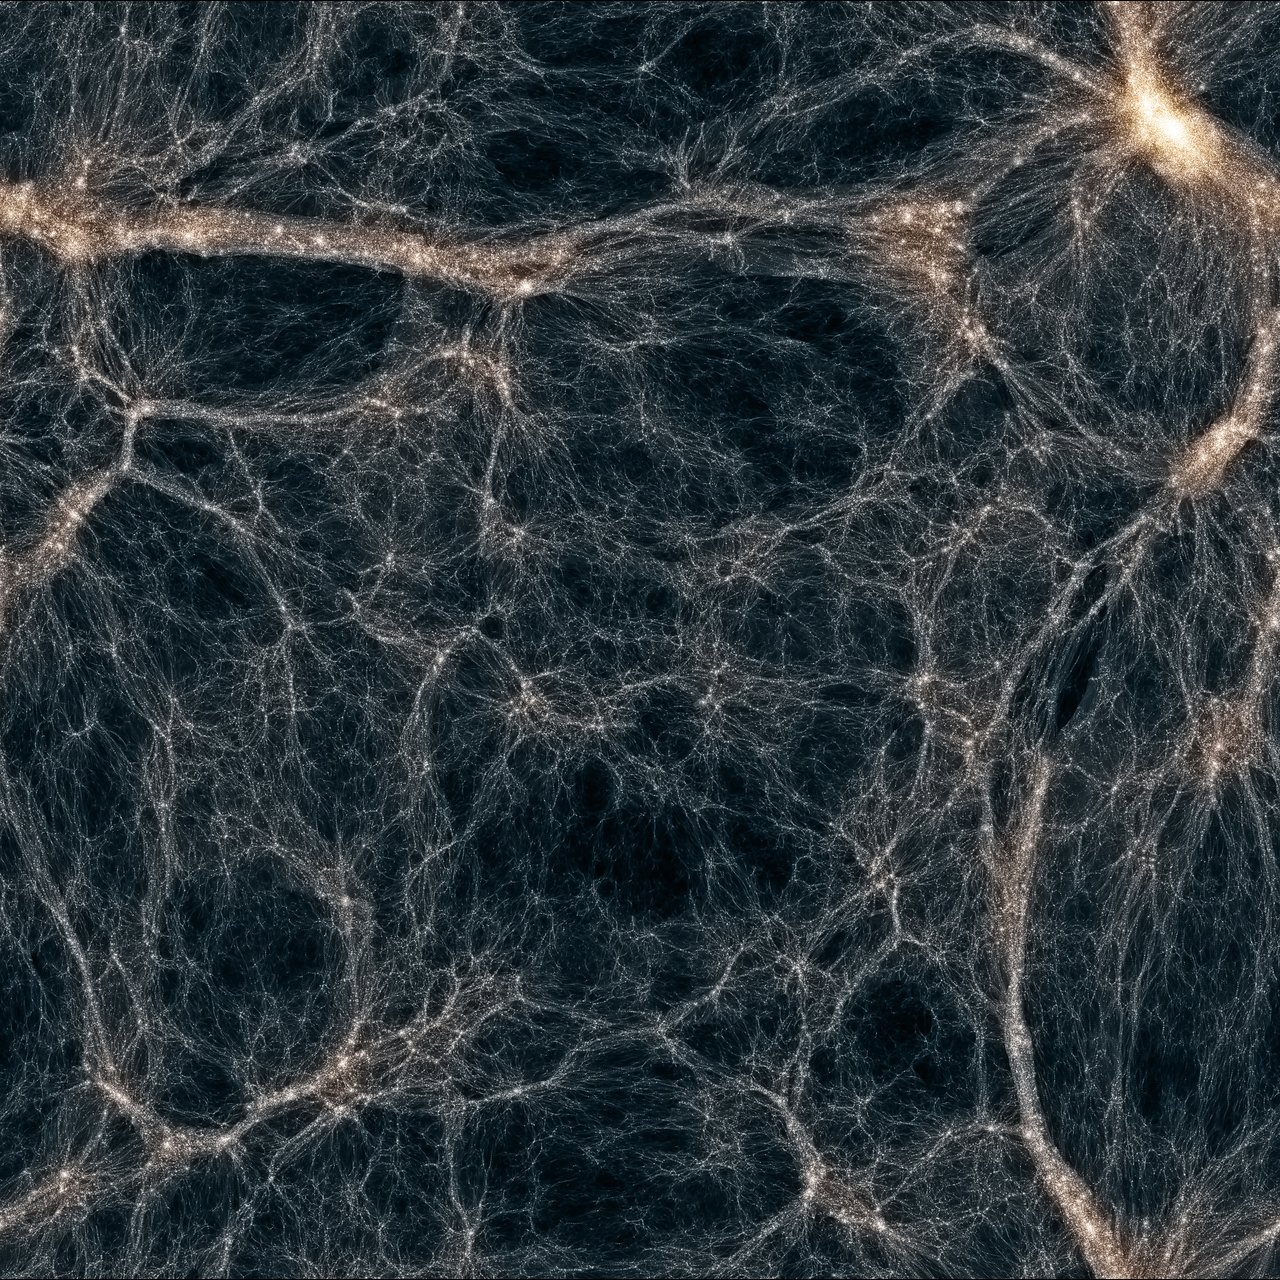 Cobweb of dark matter filaments